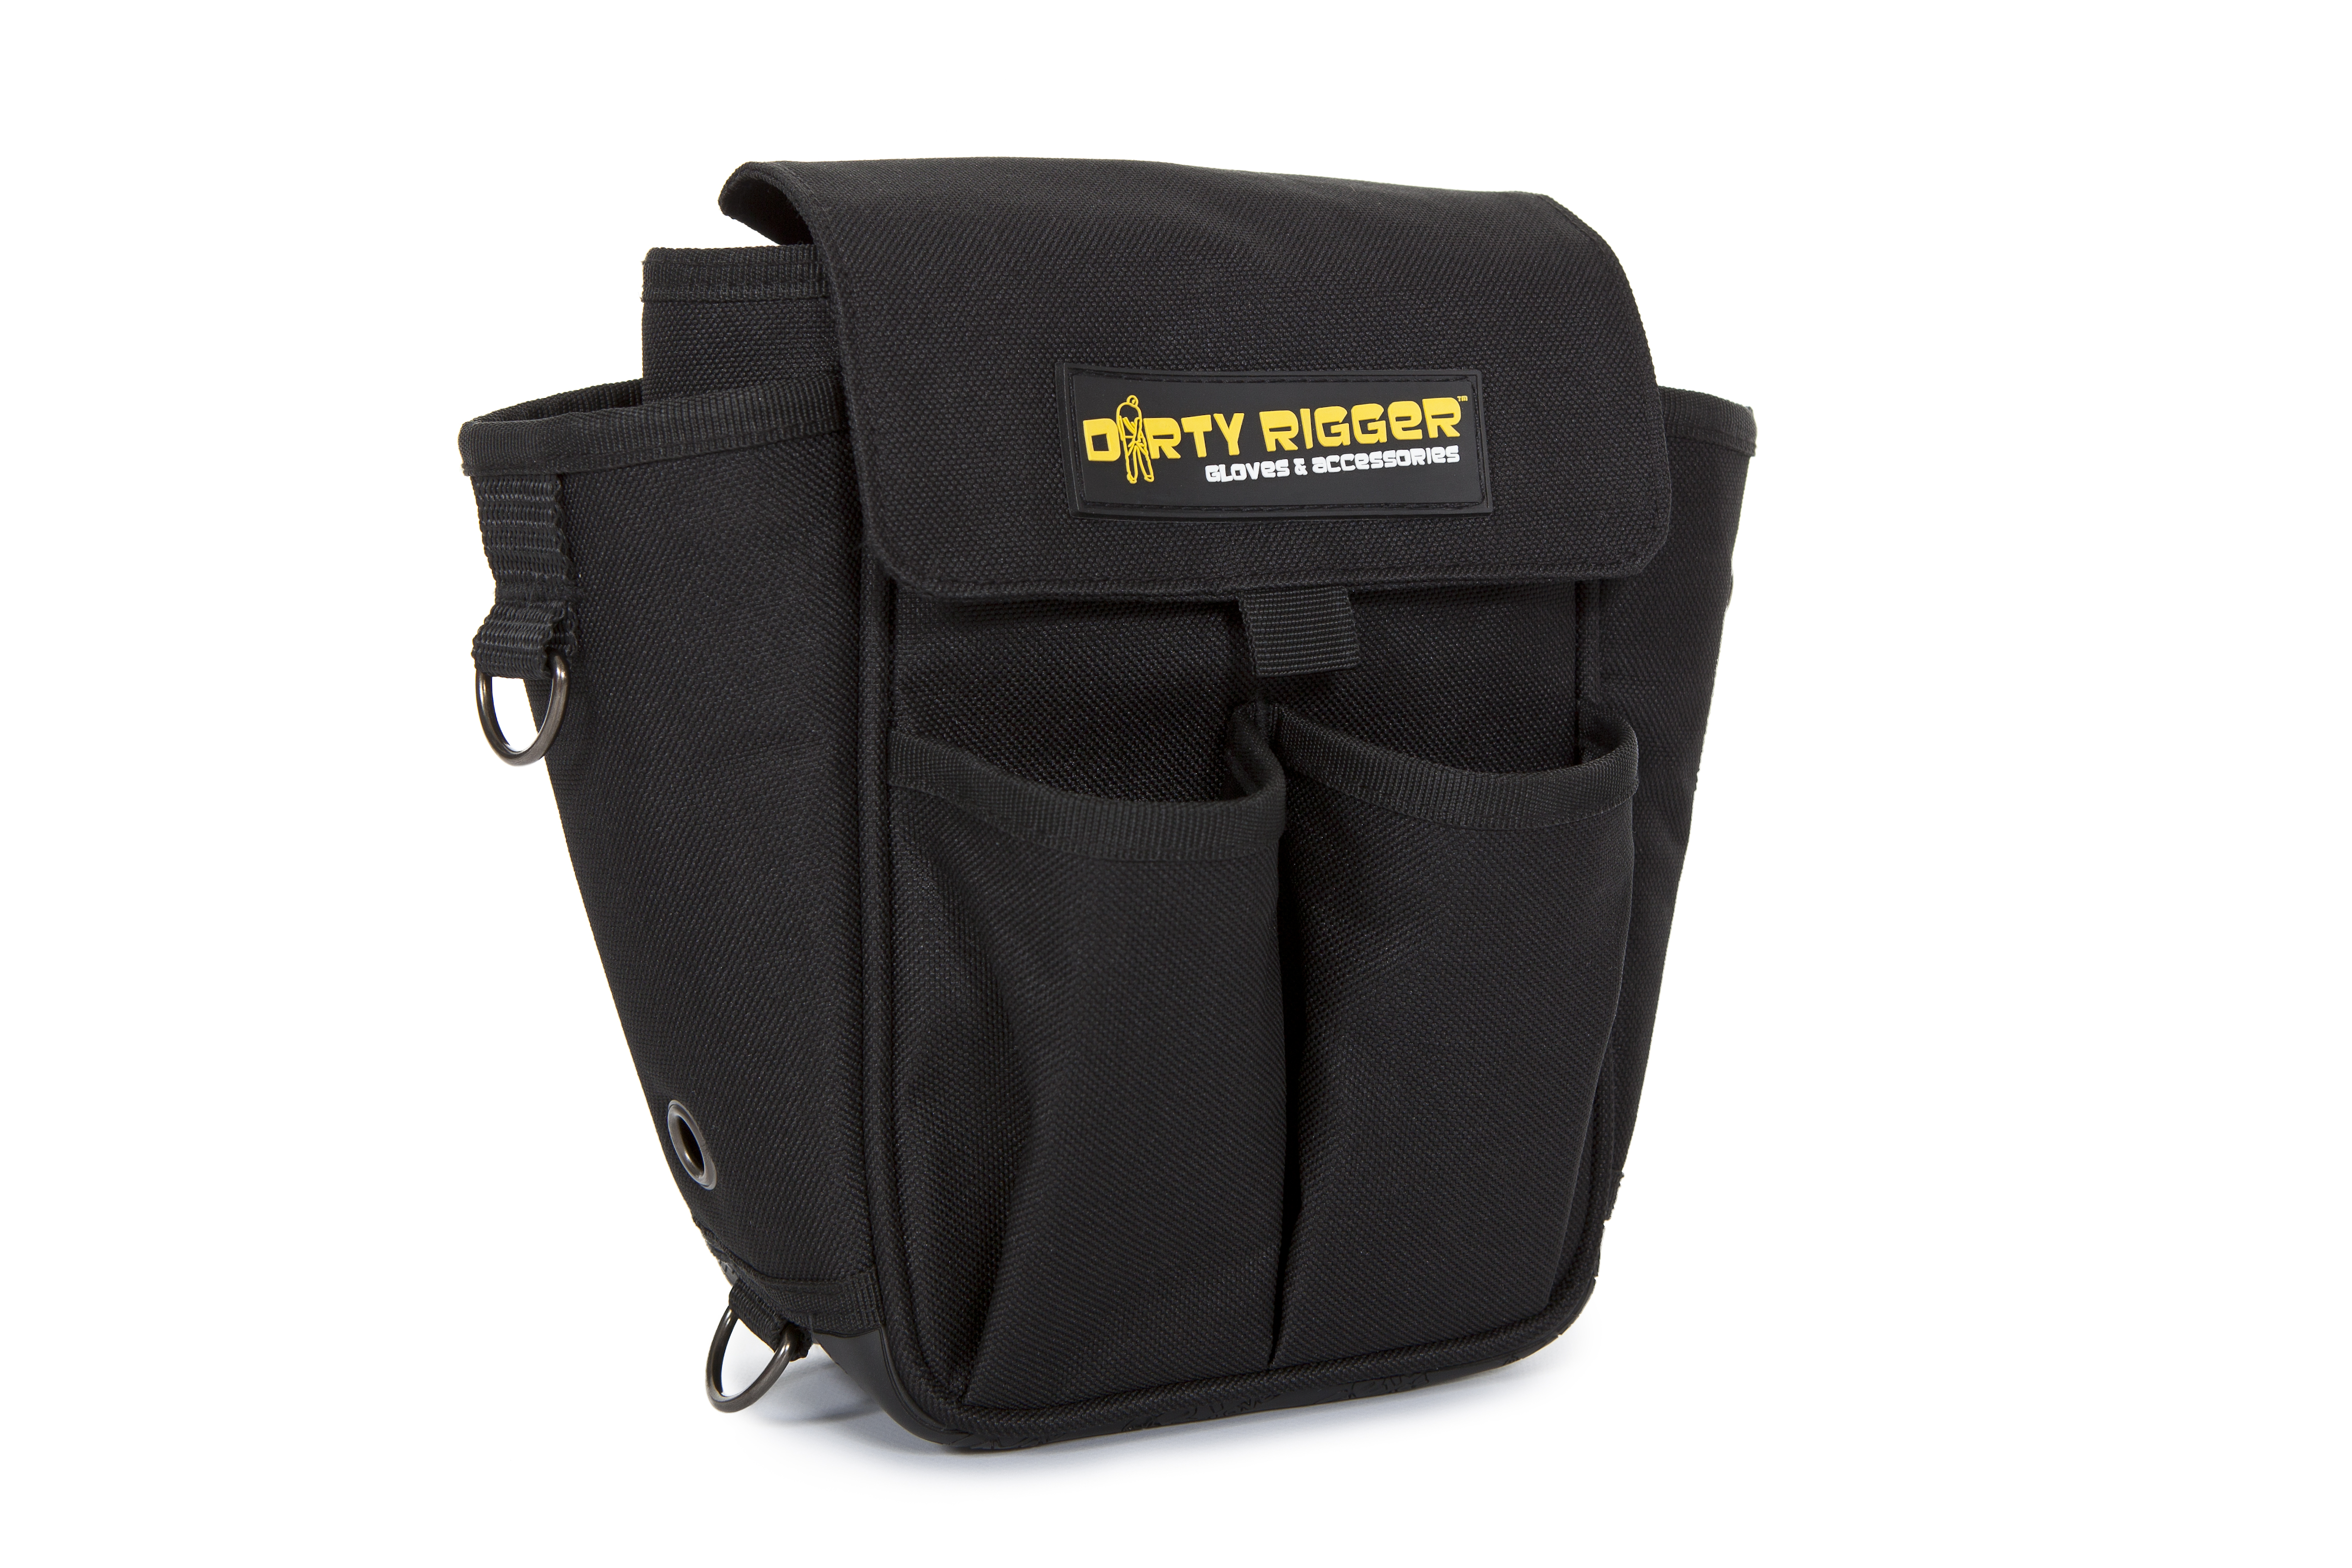 Dirty Rigger Tech Tool Pouch V2.0